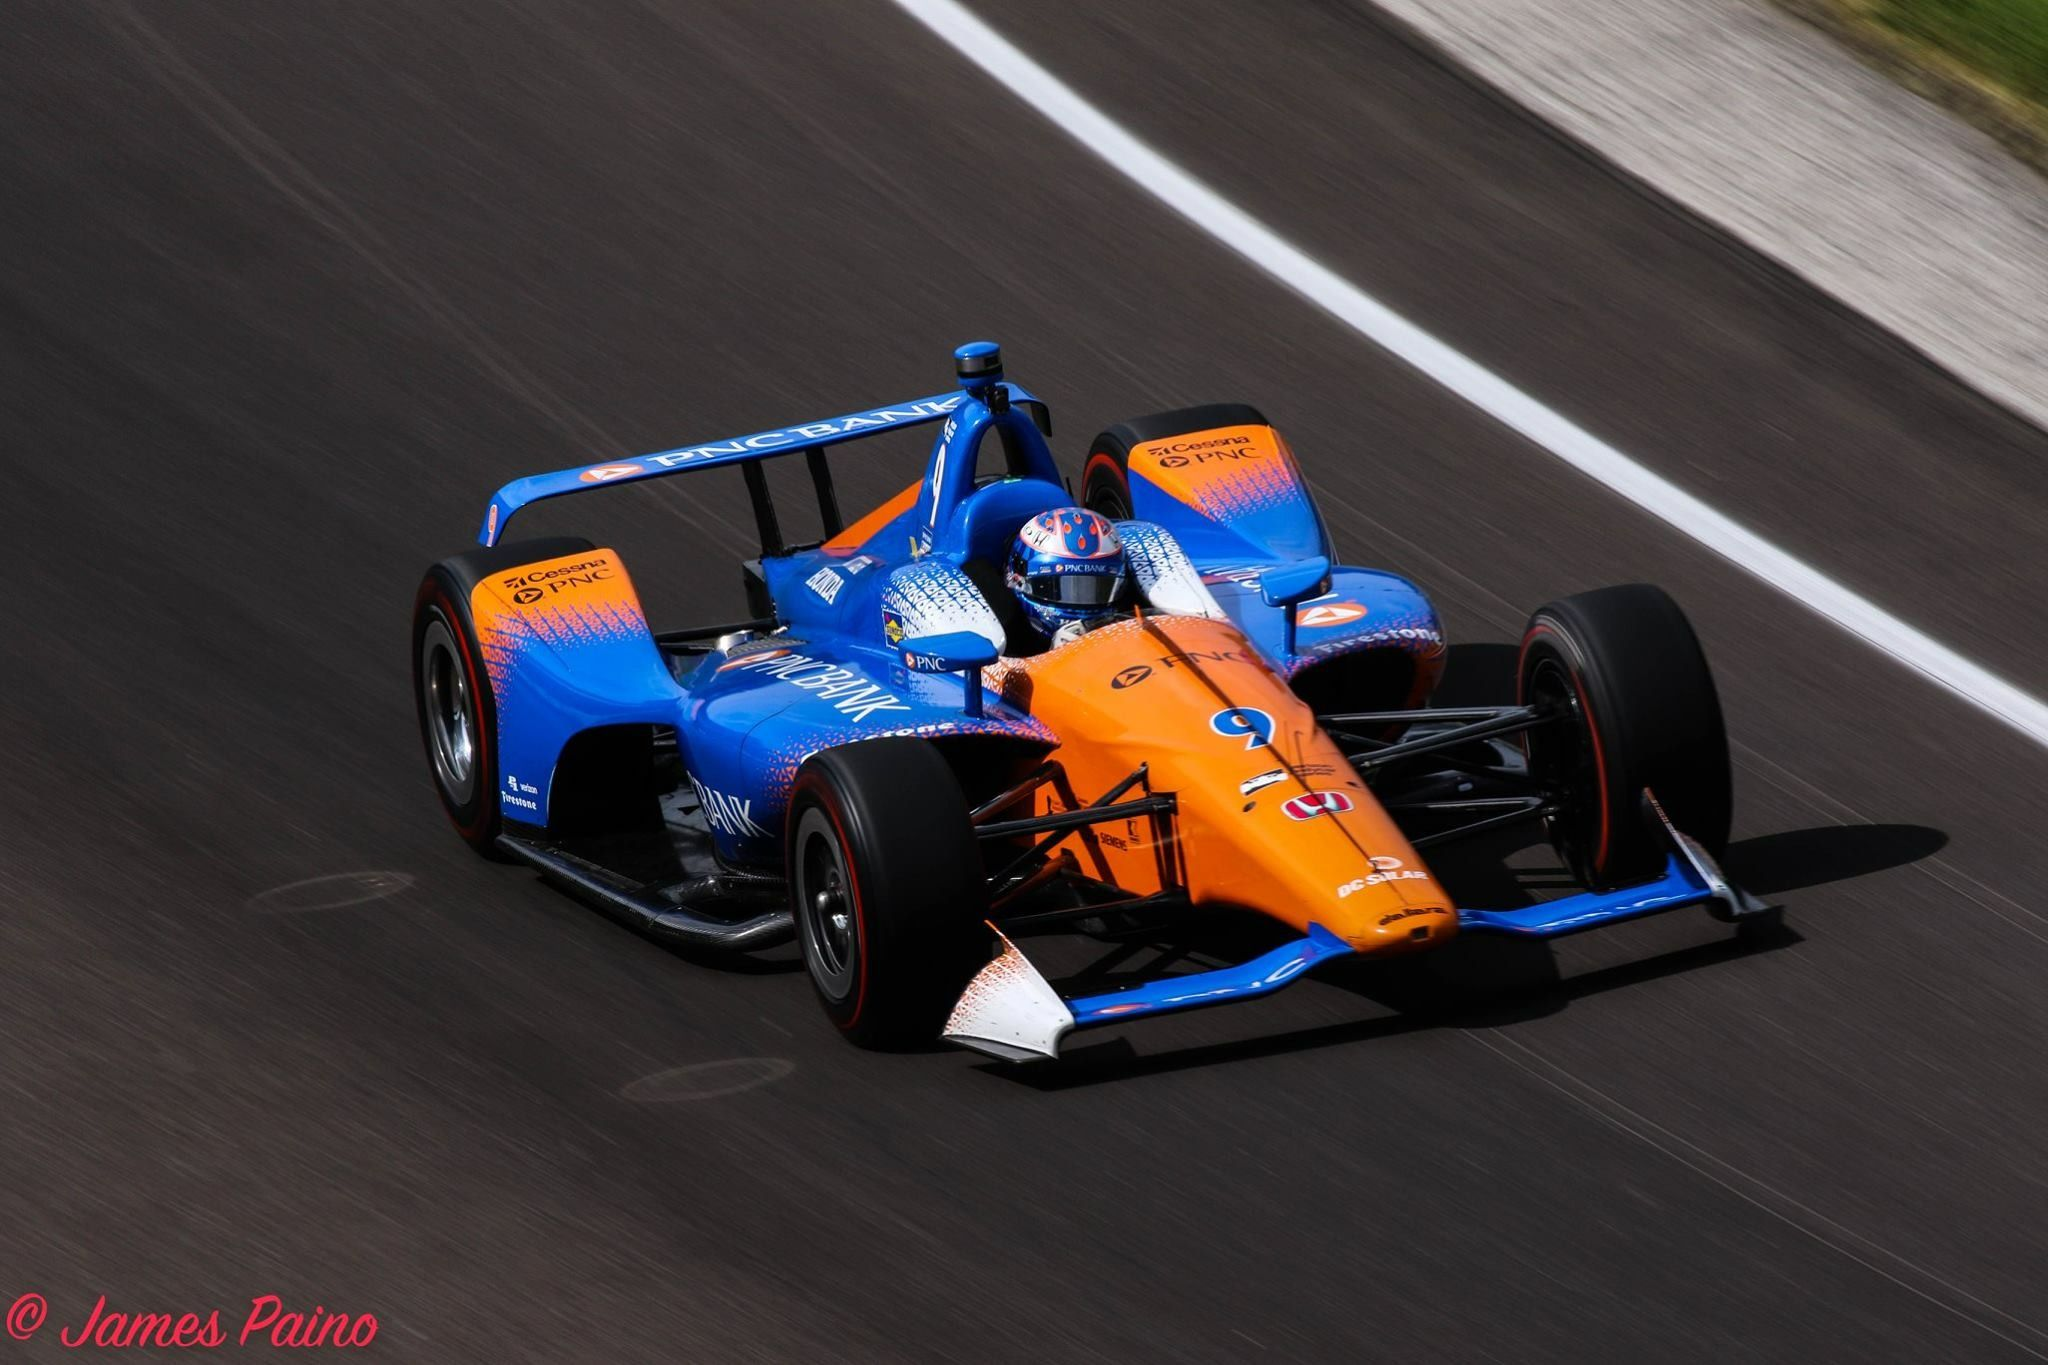 Pin by james paino on Indy 500 Indy 500, Racing, Open